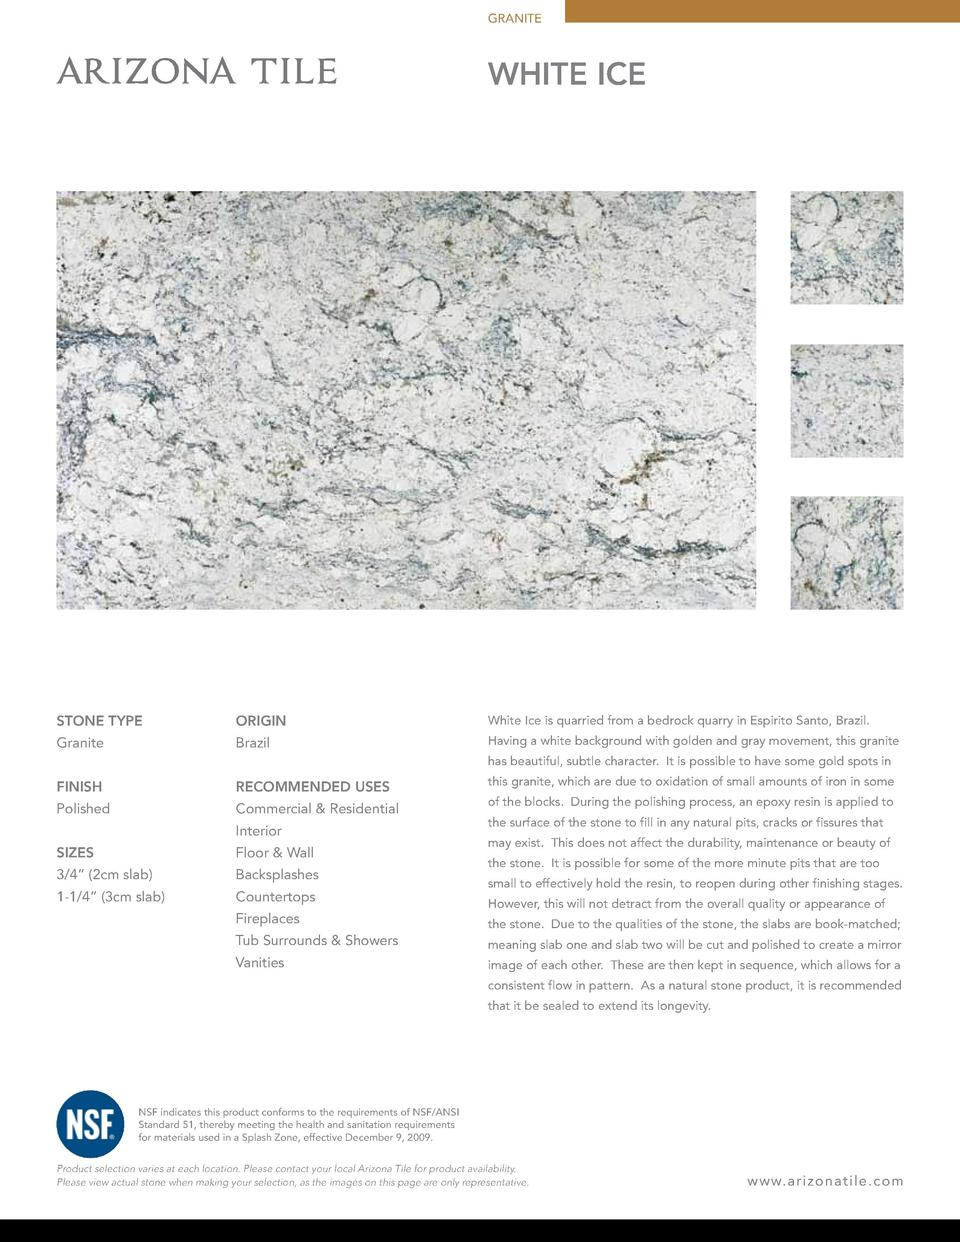 GRANITE  WHITE ICE  STONE TYPE  ORIGIN  White Ice is quarried from a bedrock quarry in Espirito Santo, Brazil.  Granite  B...